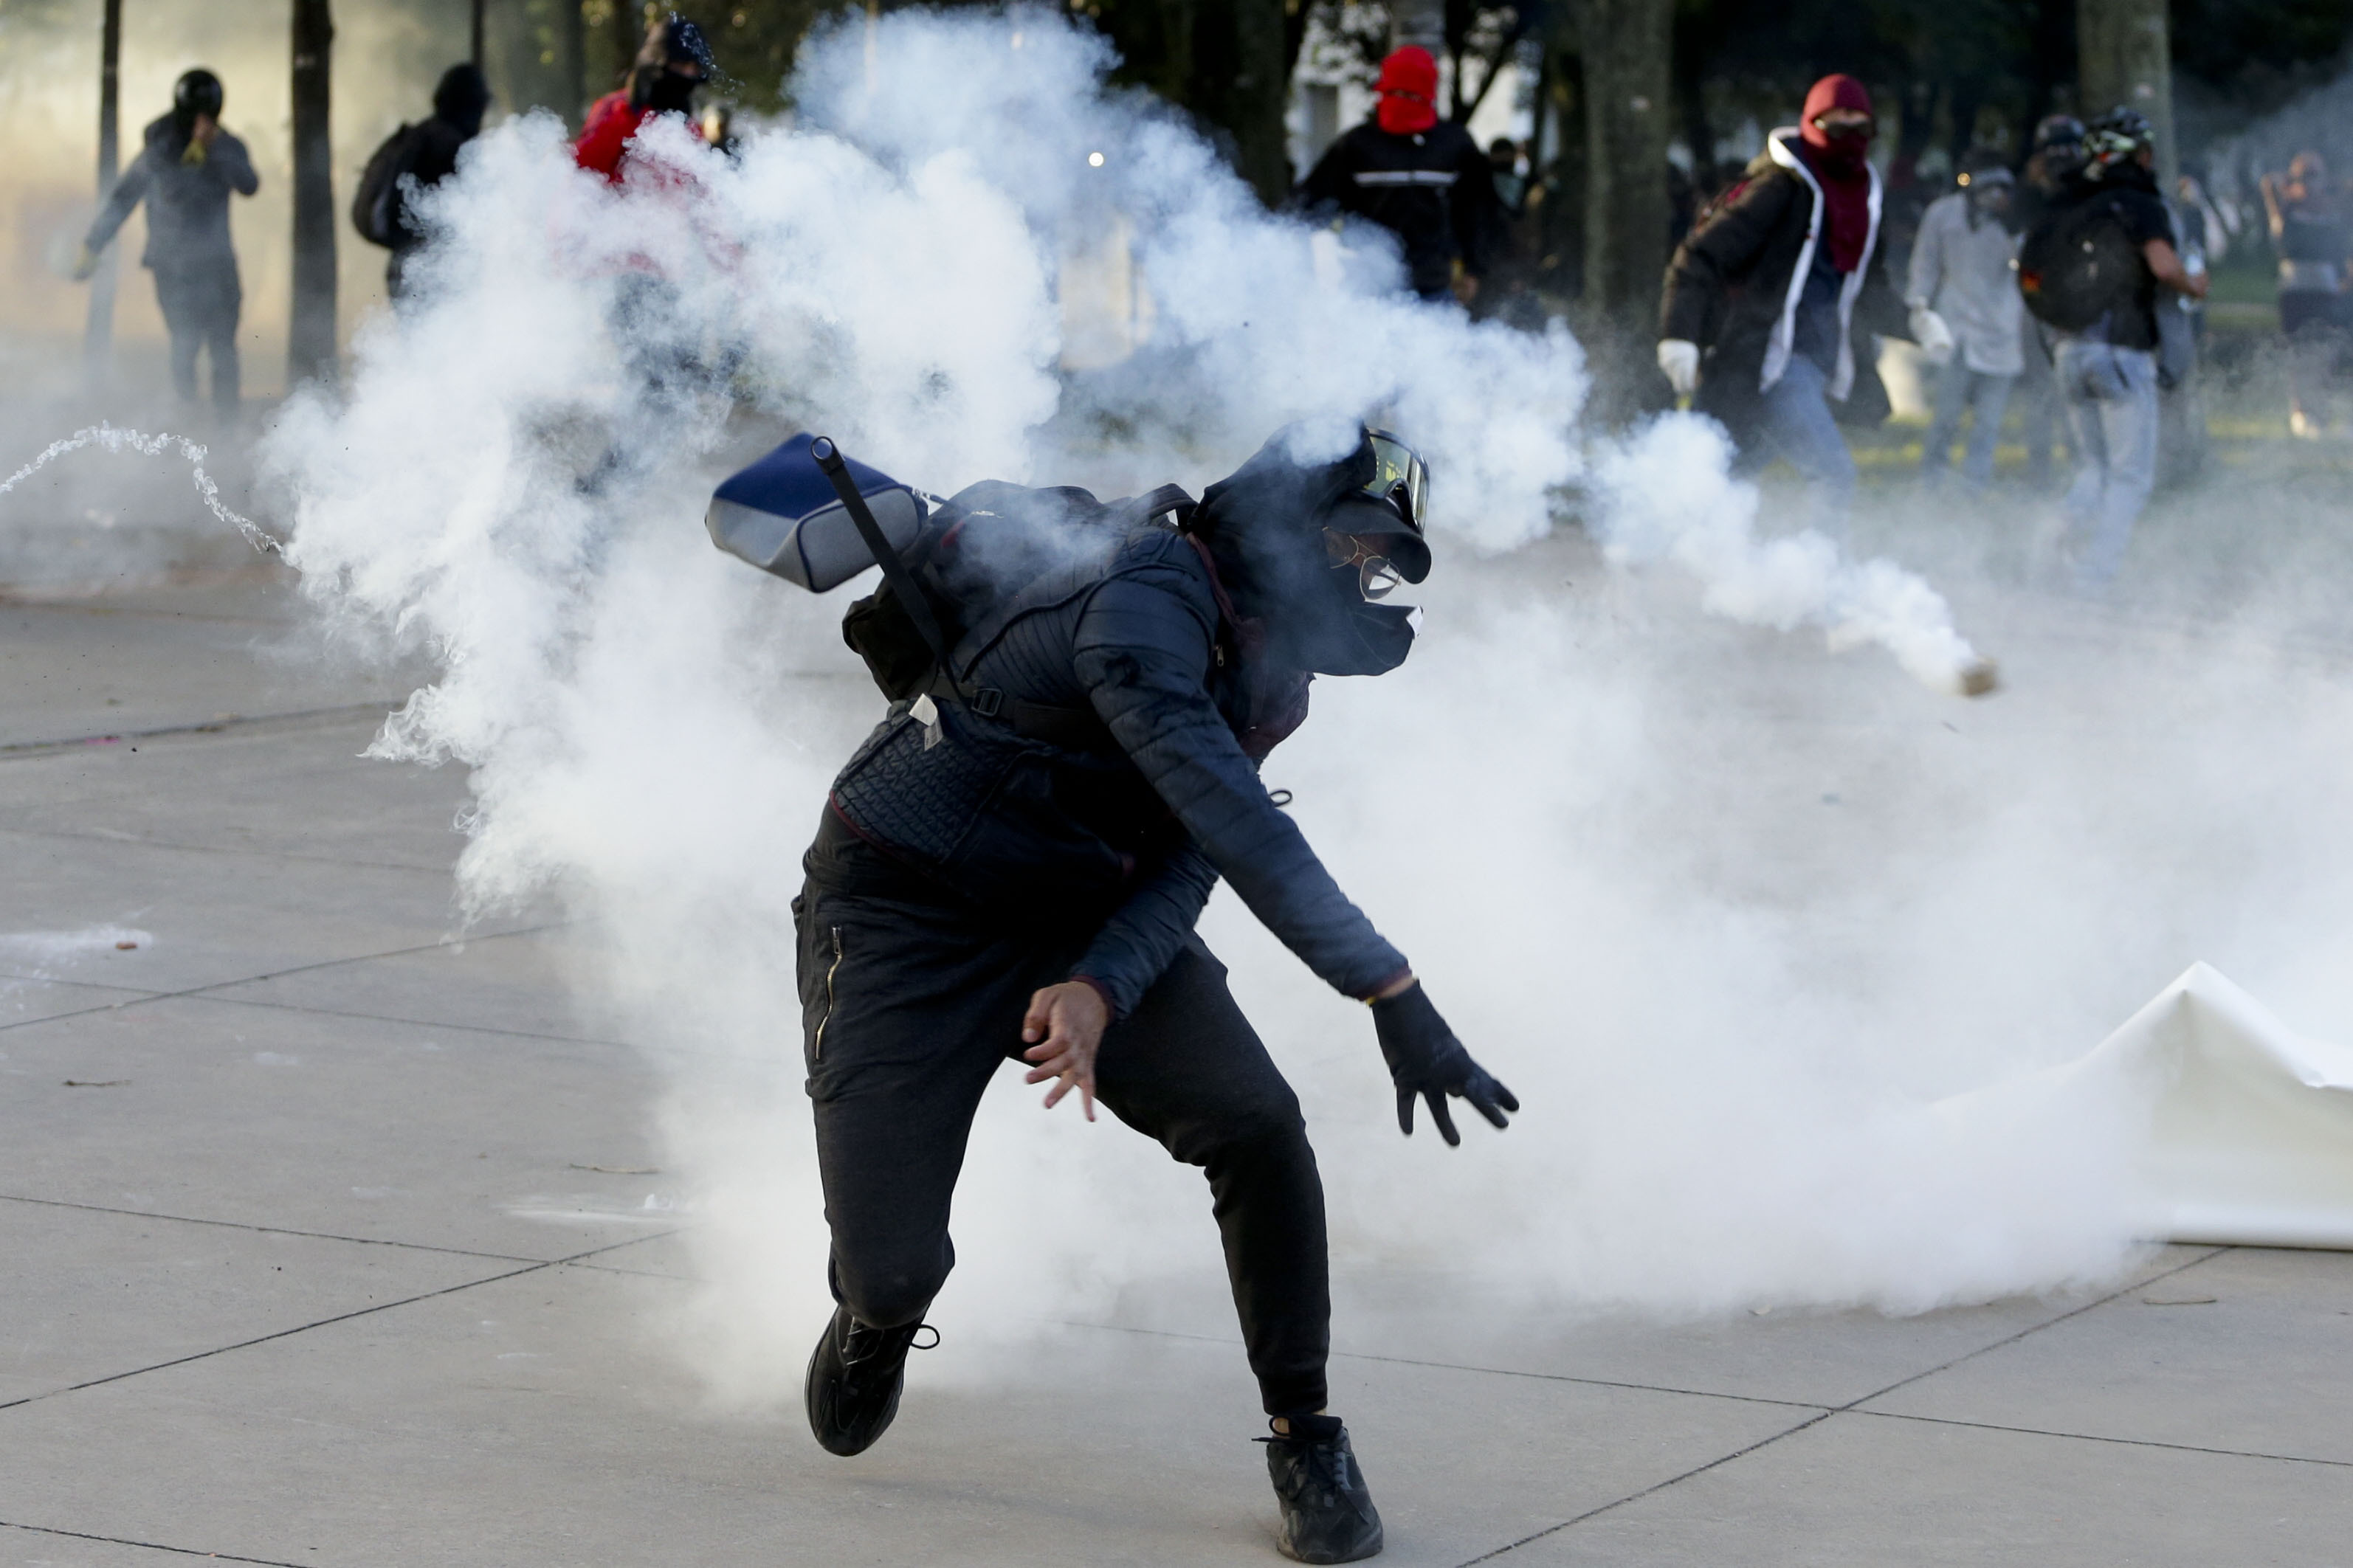 A student throws a tear gas canister back at the police during clashes at the National University in Bogota, Colombia, Tuesday, Nov. 26, 2019.